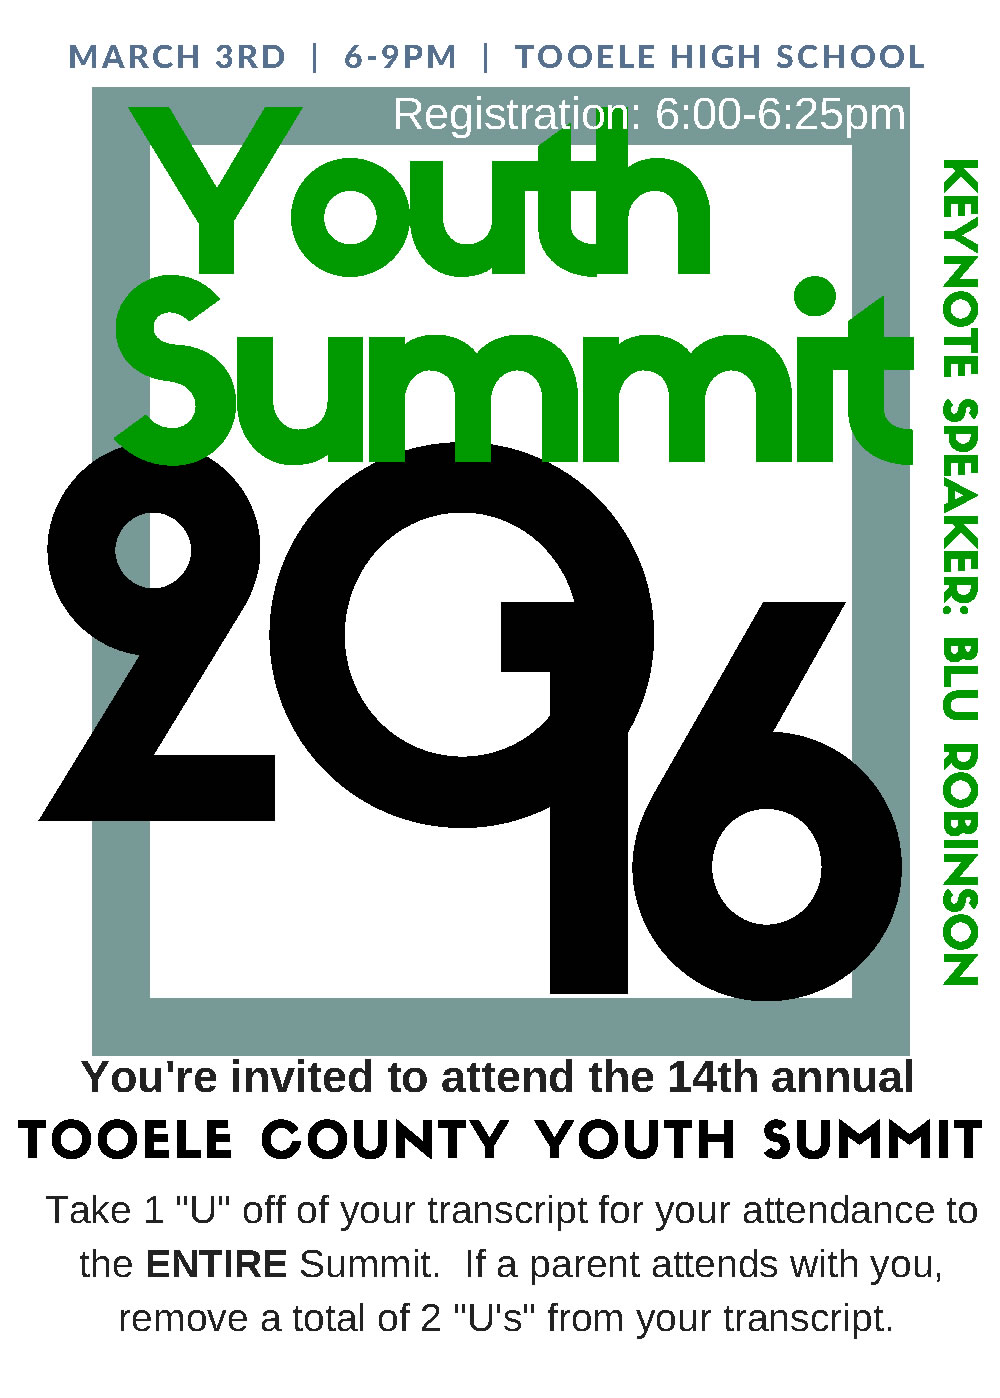 Tooele County Youth Summit 2016 @ Tooele High School | Tooele | Utah | United States